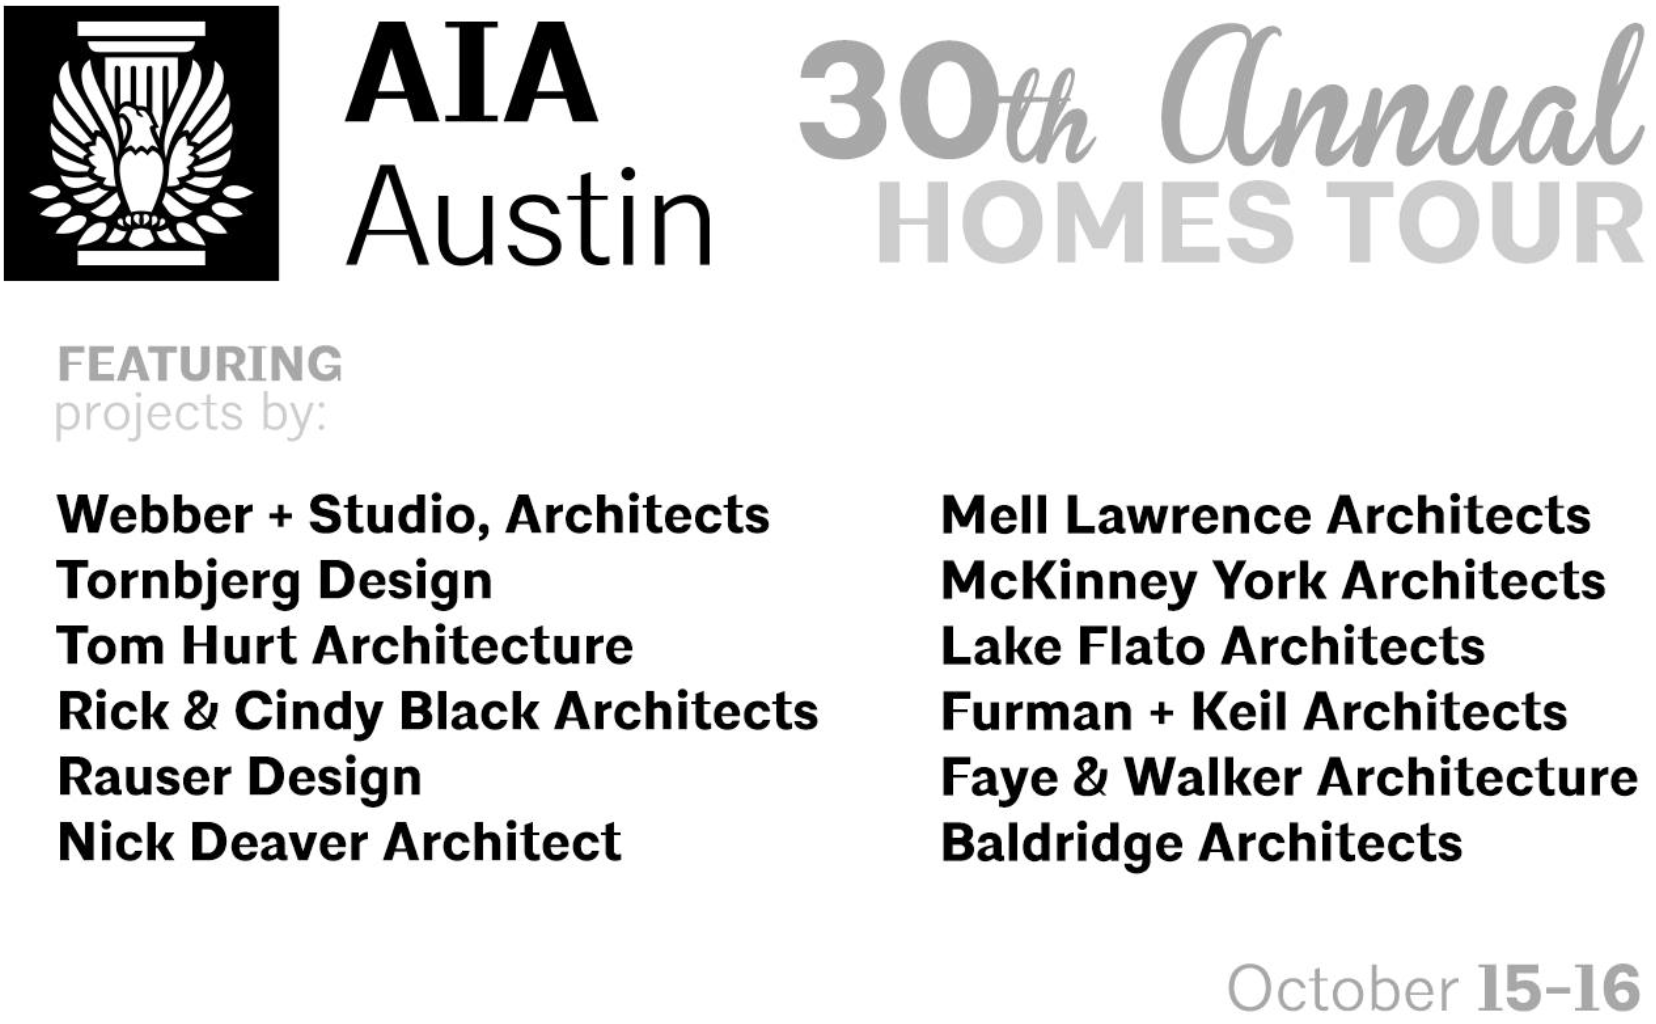 2016 AIA Homes Tour